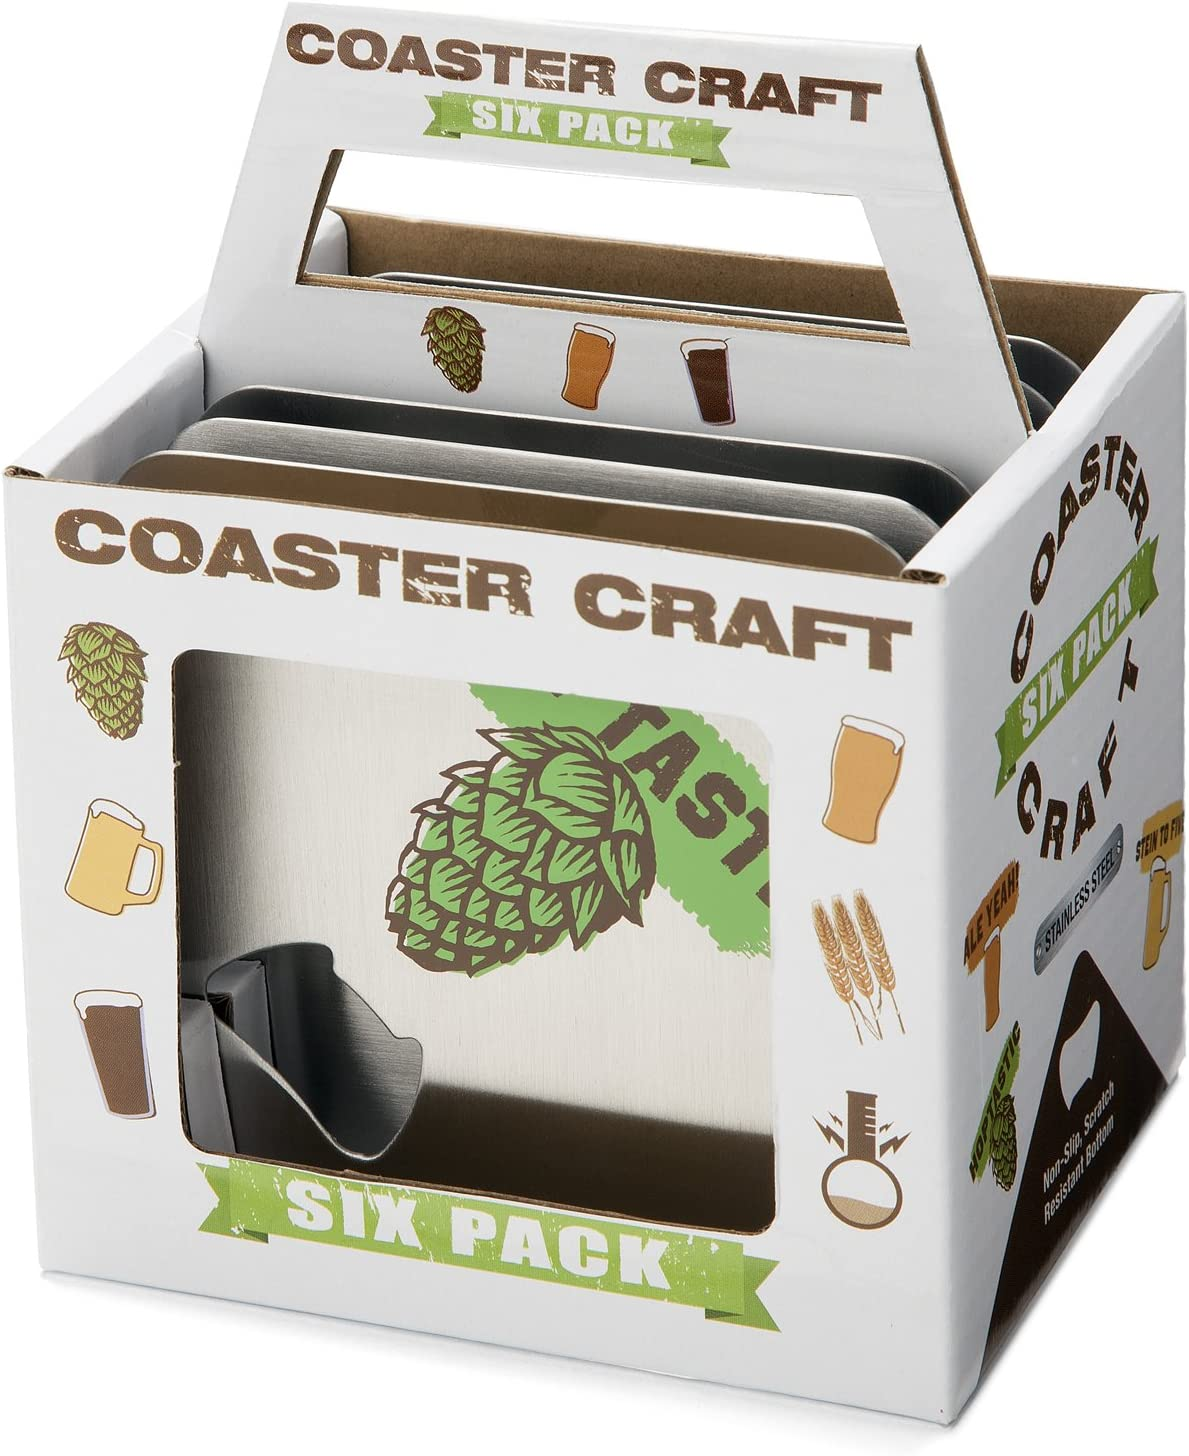 FuhlSpeed ACBC-006 Coaster Craft Stainless Steel Beverage Coasters with Built-In Bottle Openers 6 Pack The Fulham Group